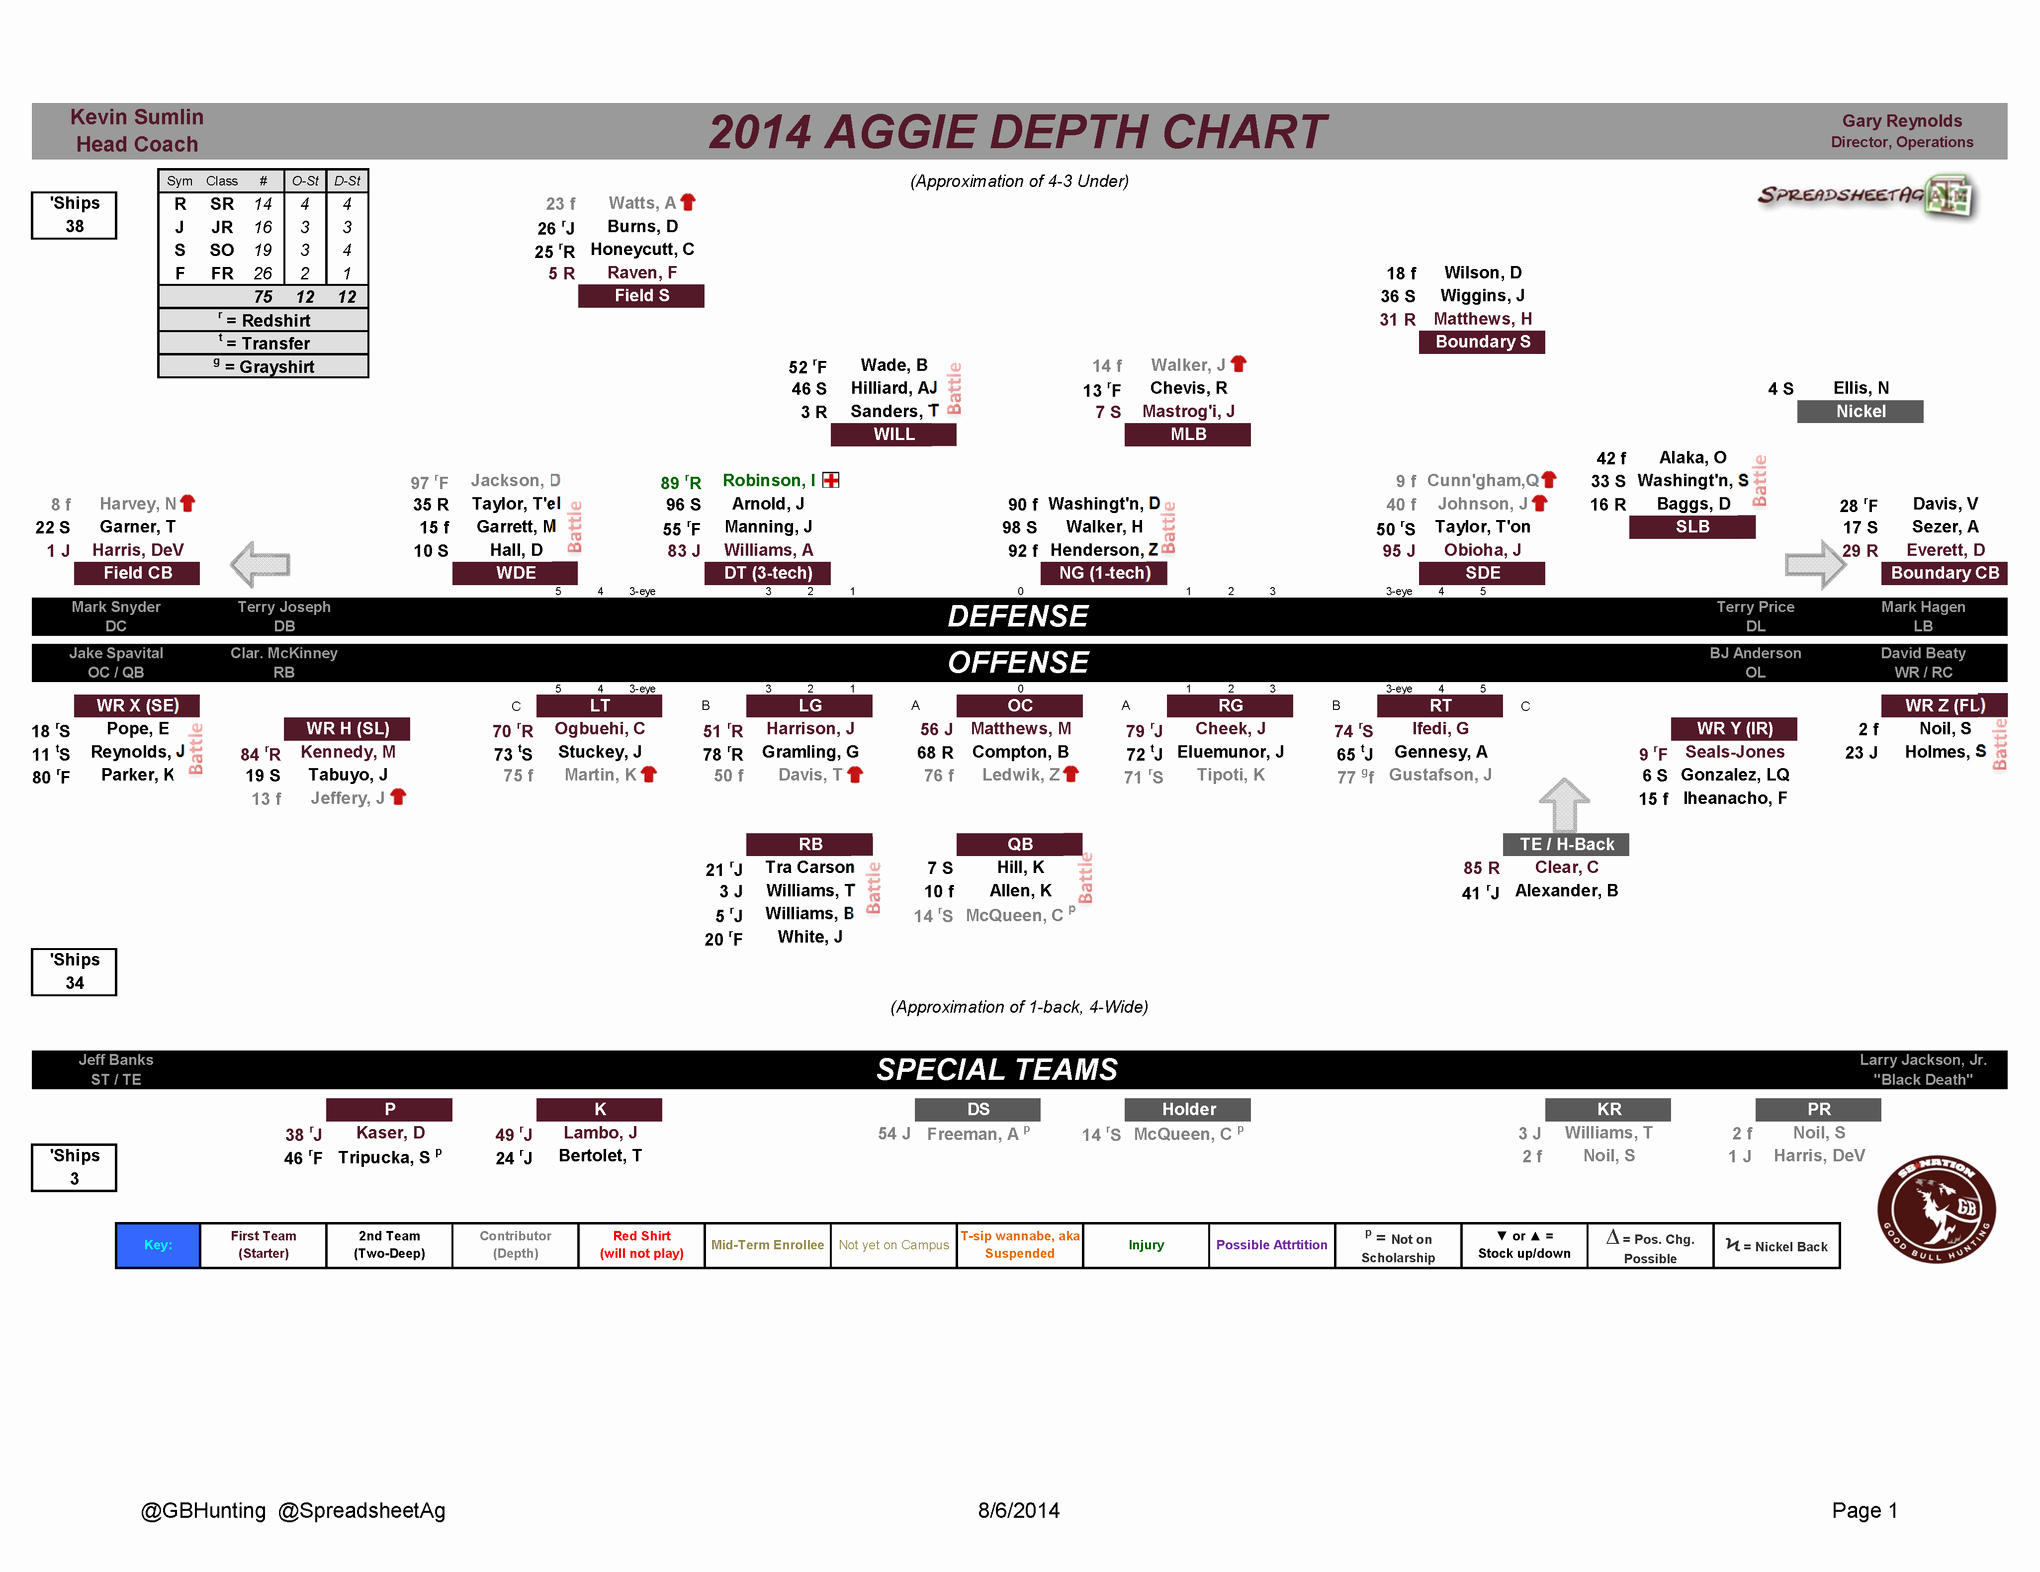 Football Depth Chart Template Awesome Texas A&m Football 2014 Depth Chart Good Bull Hunting